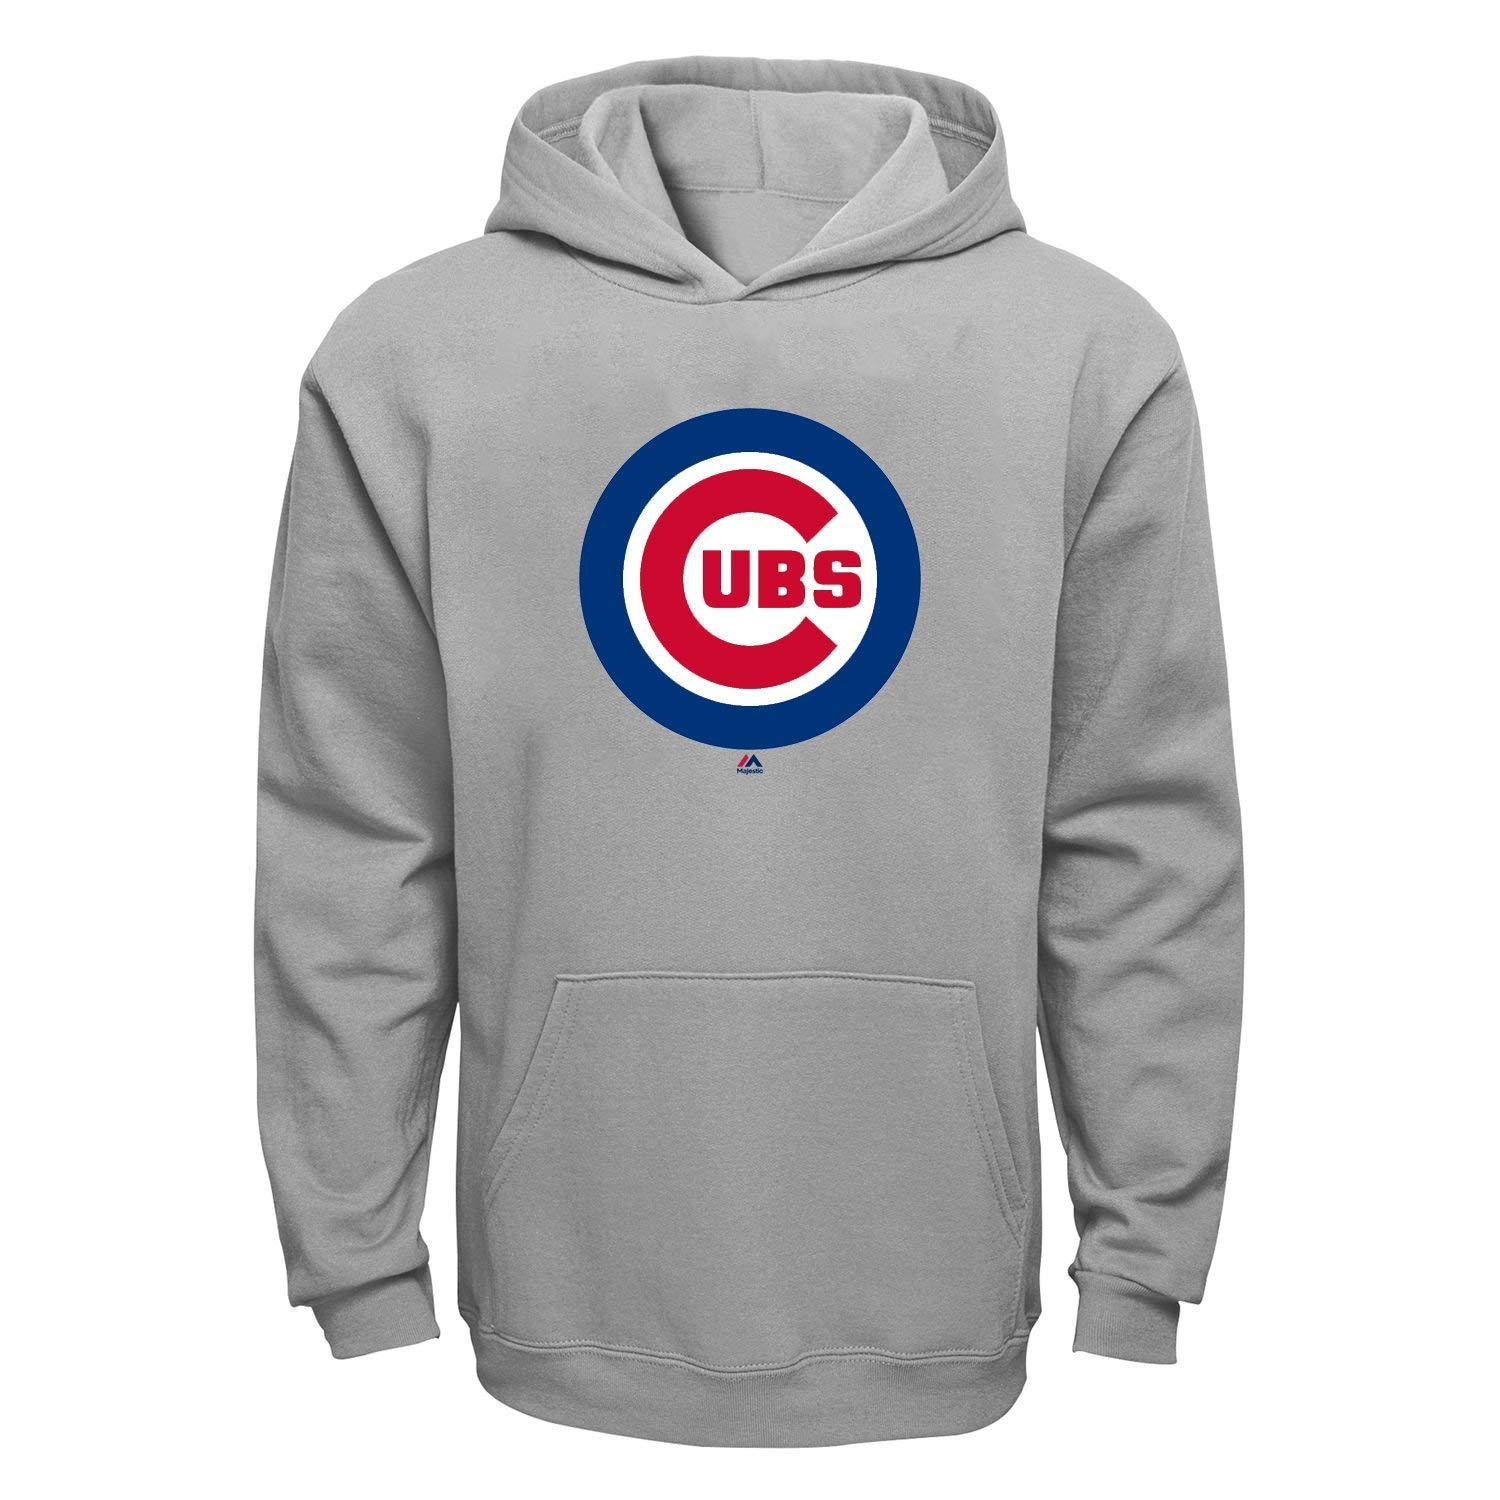 the latest 793b7 fcbf5 Amazon.com : Outerstuff Chicago Cubs Gray Kids Team Primary ...